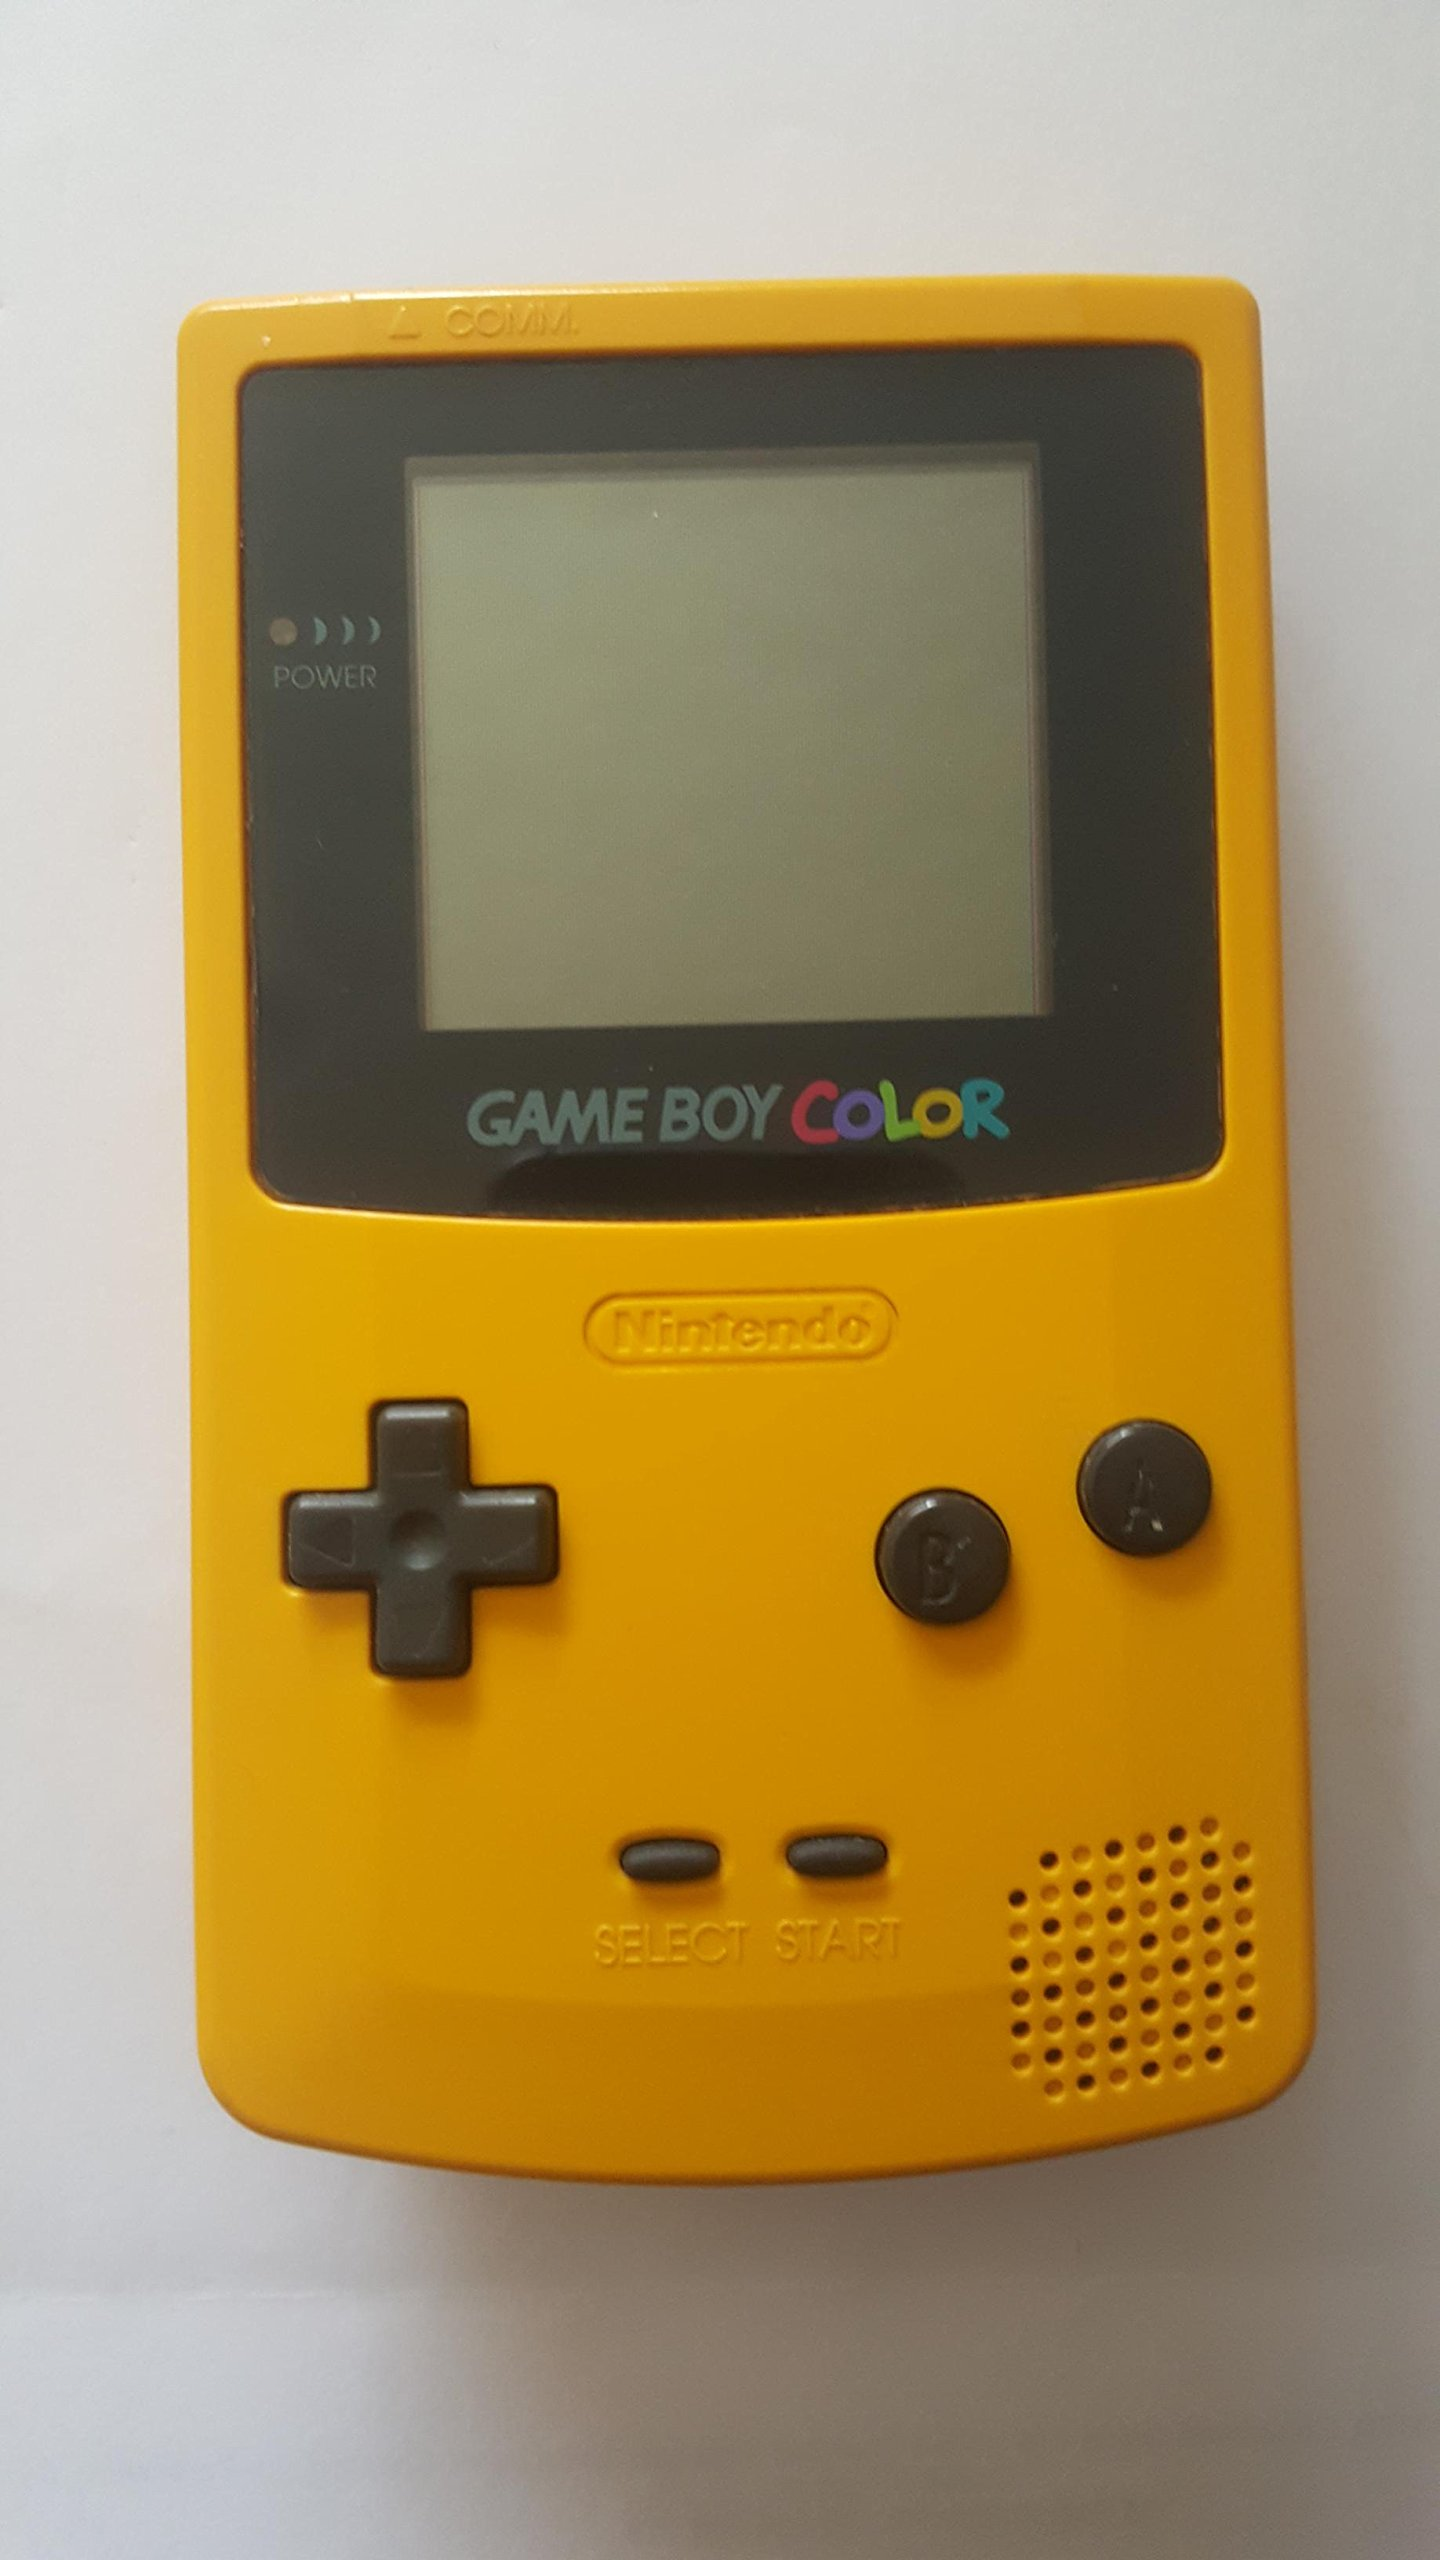 game boy color giochi : Image Unavailable Image Not Available For Color Game Boy